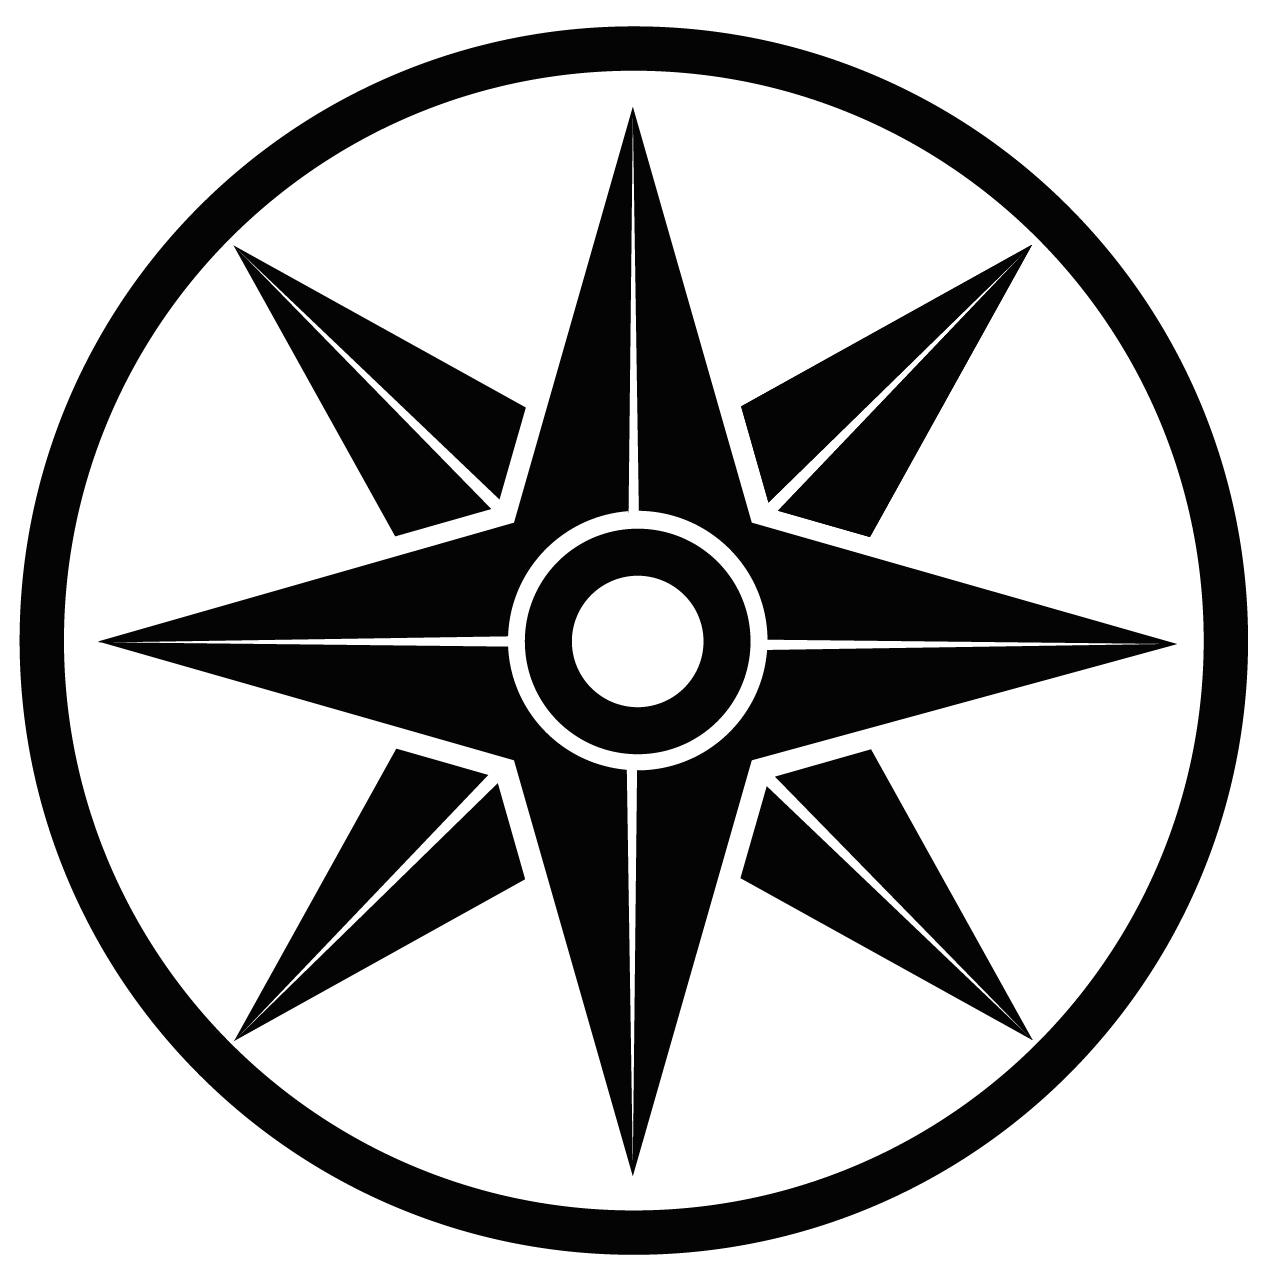 black-logo-final-02.png